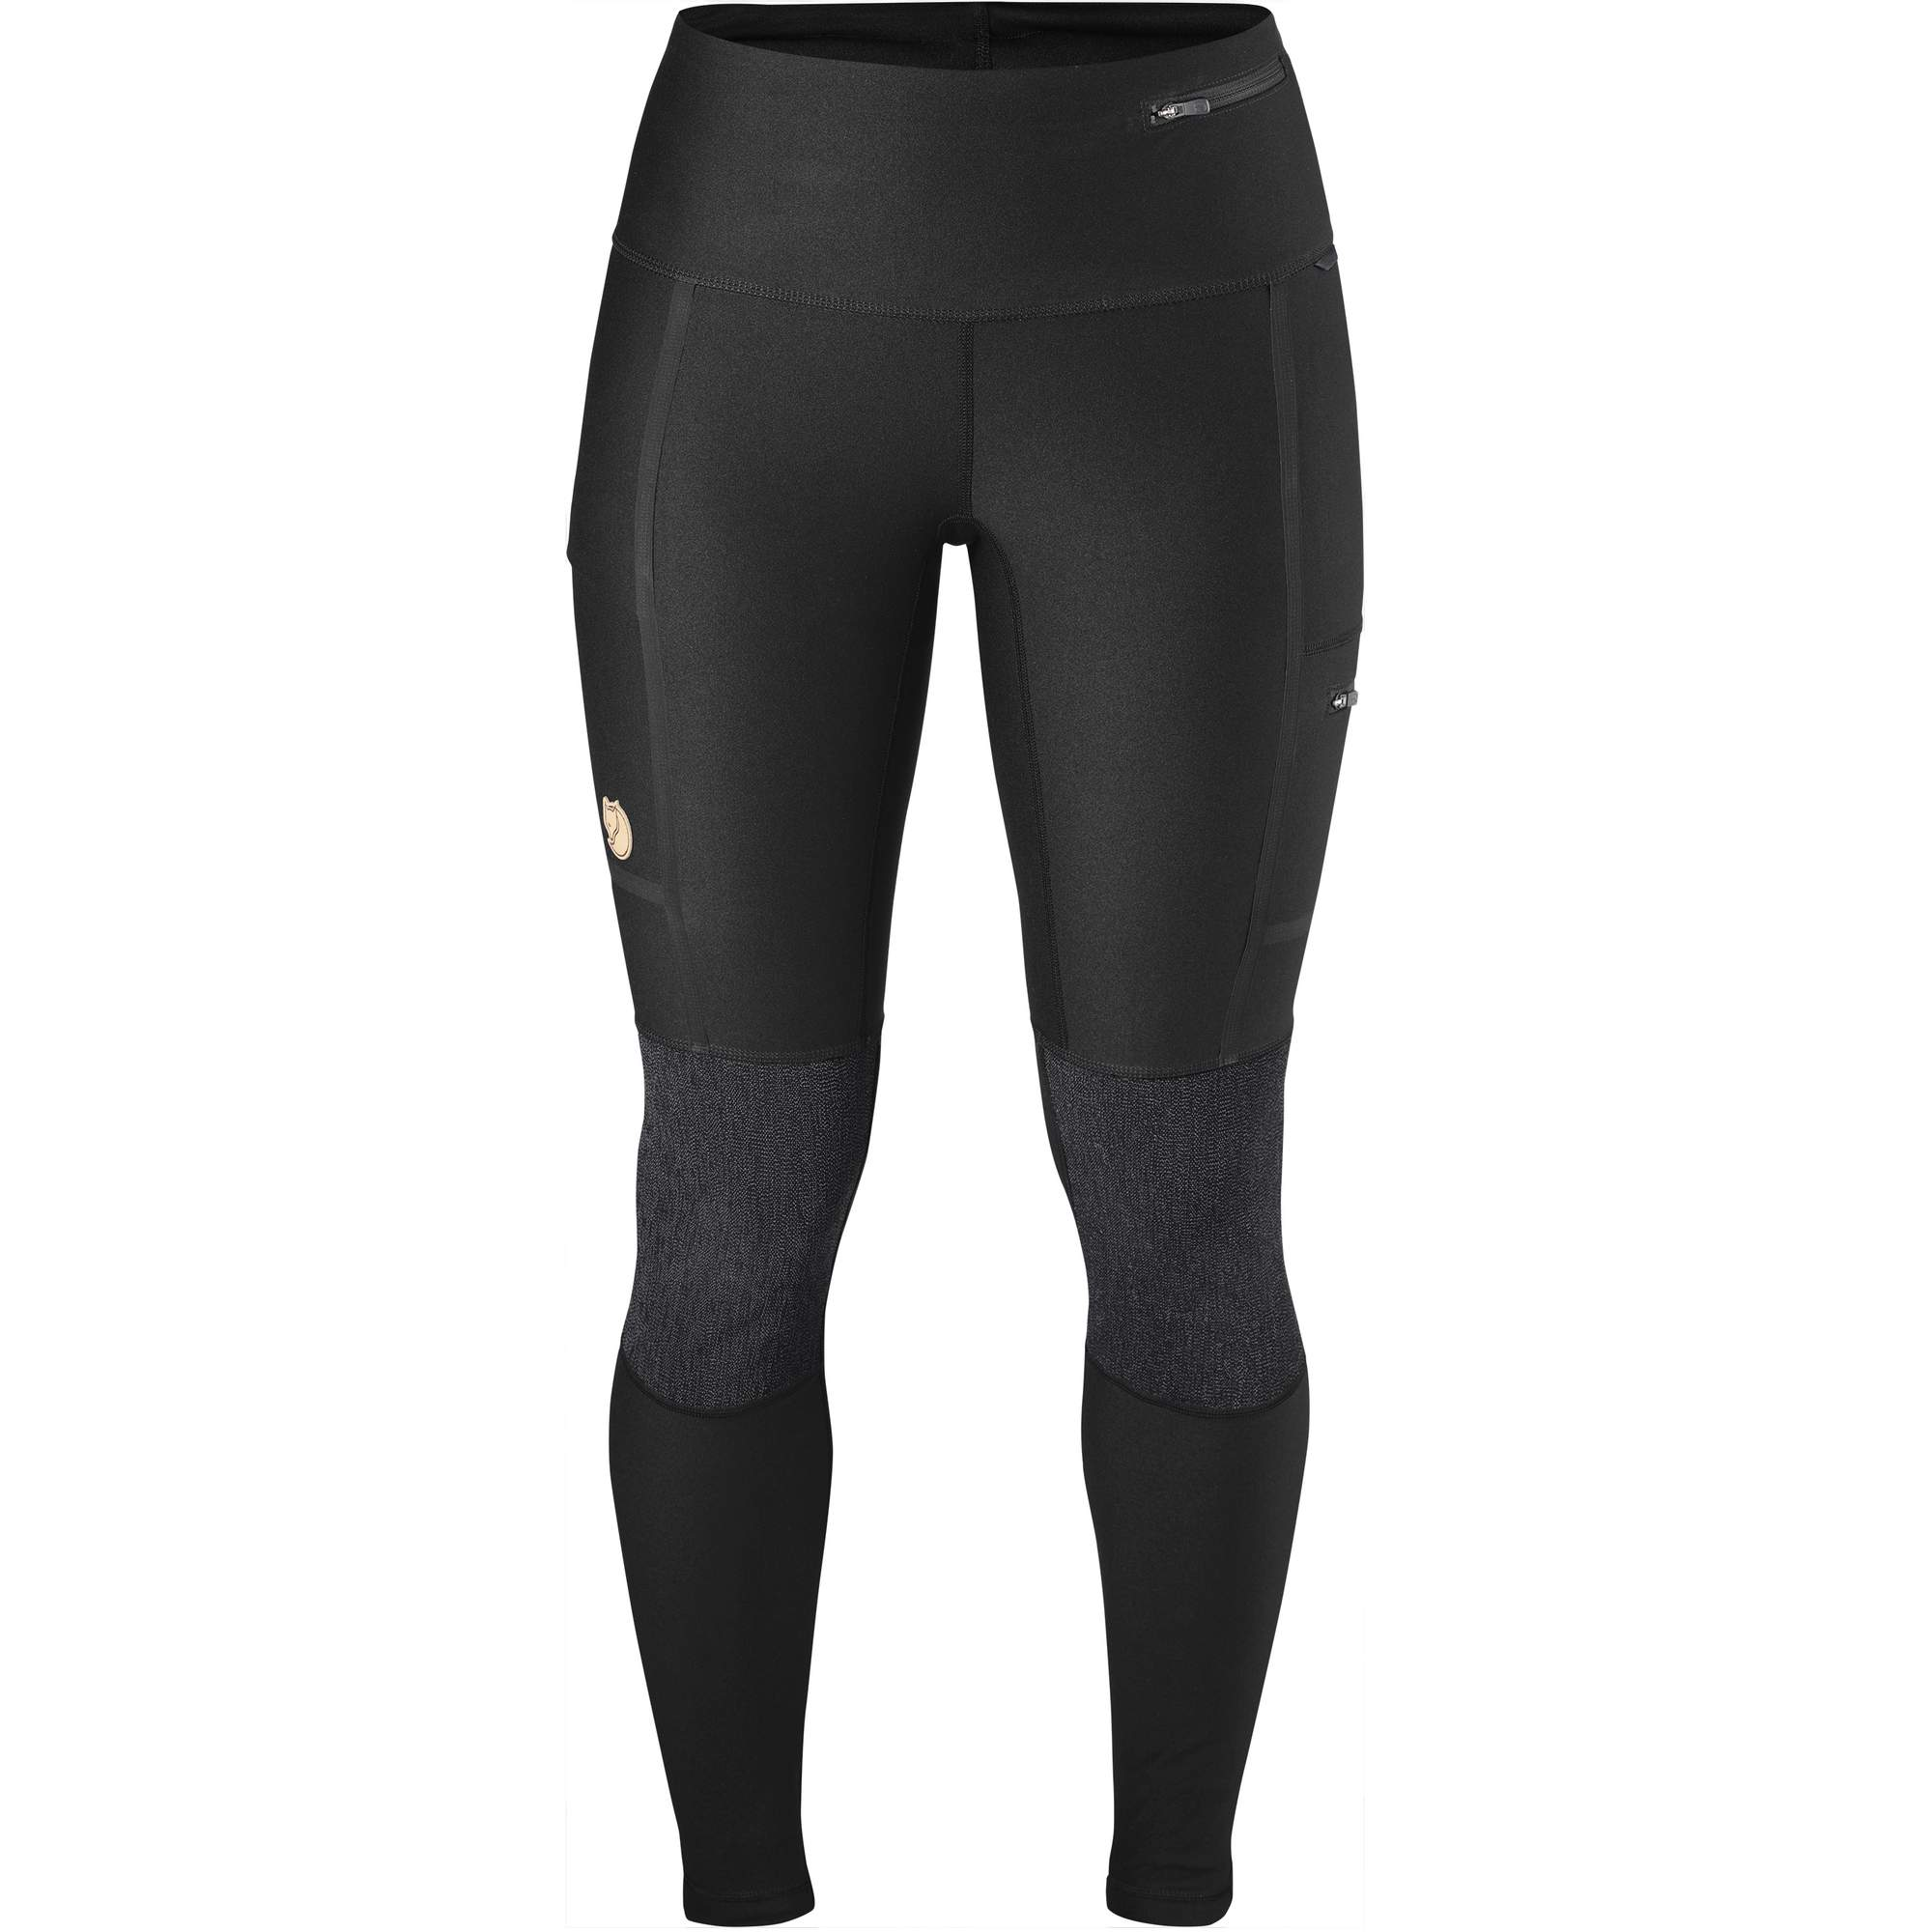 Abisko Trekking Tights - Women's